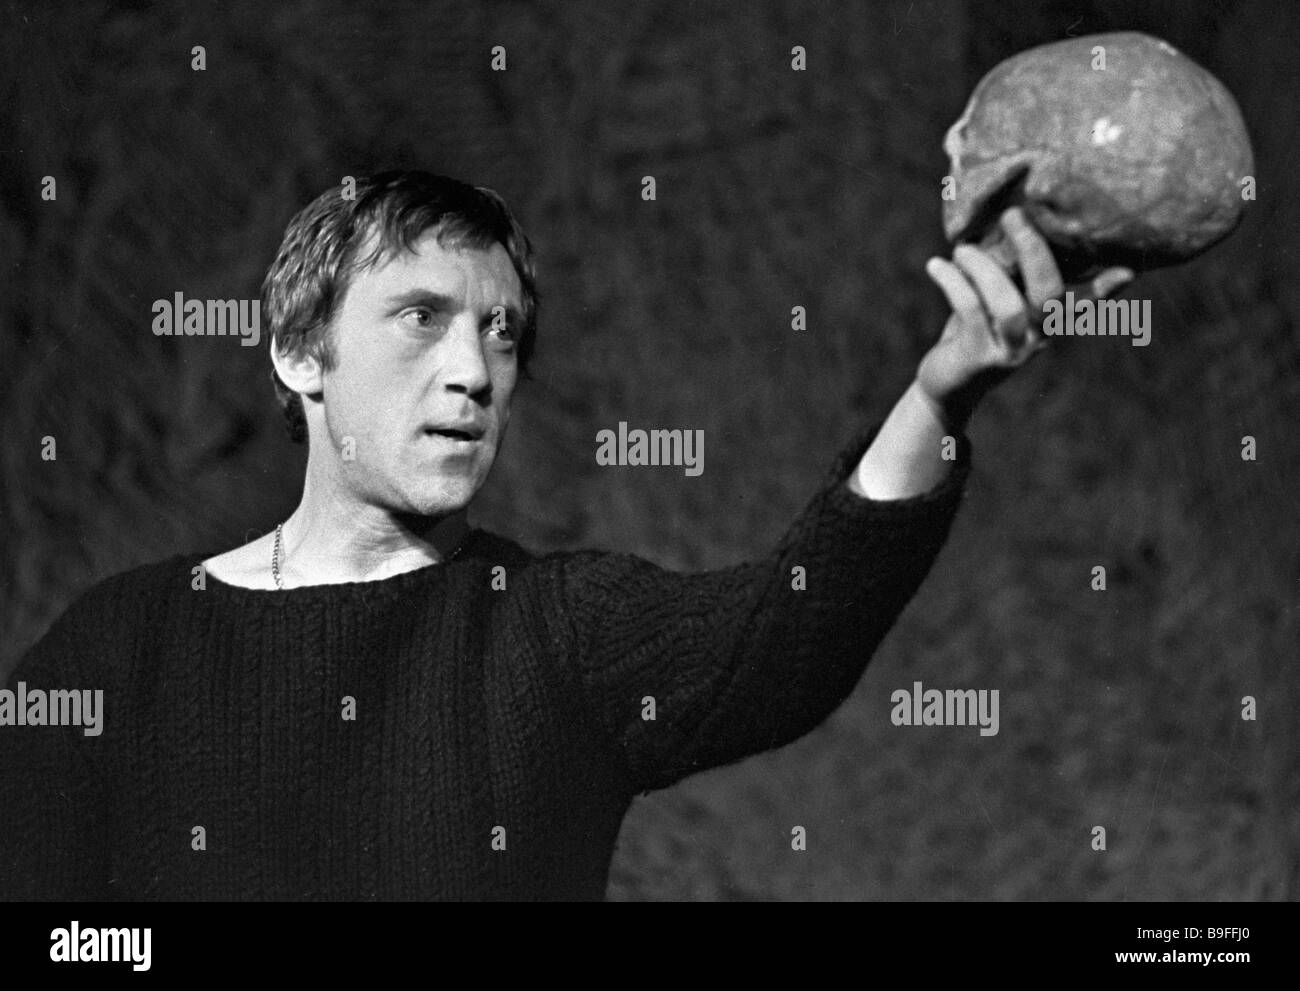 Actor Vladimir Vysotsky as Hamlet in theatrical staging of William Shakespeare s tragedy Hamlet - Stock Image